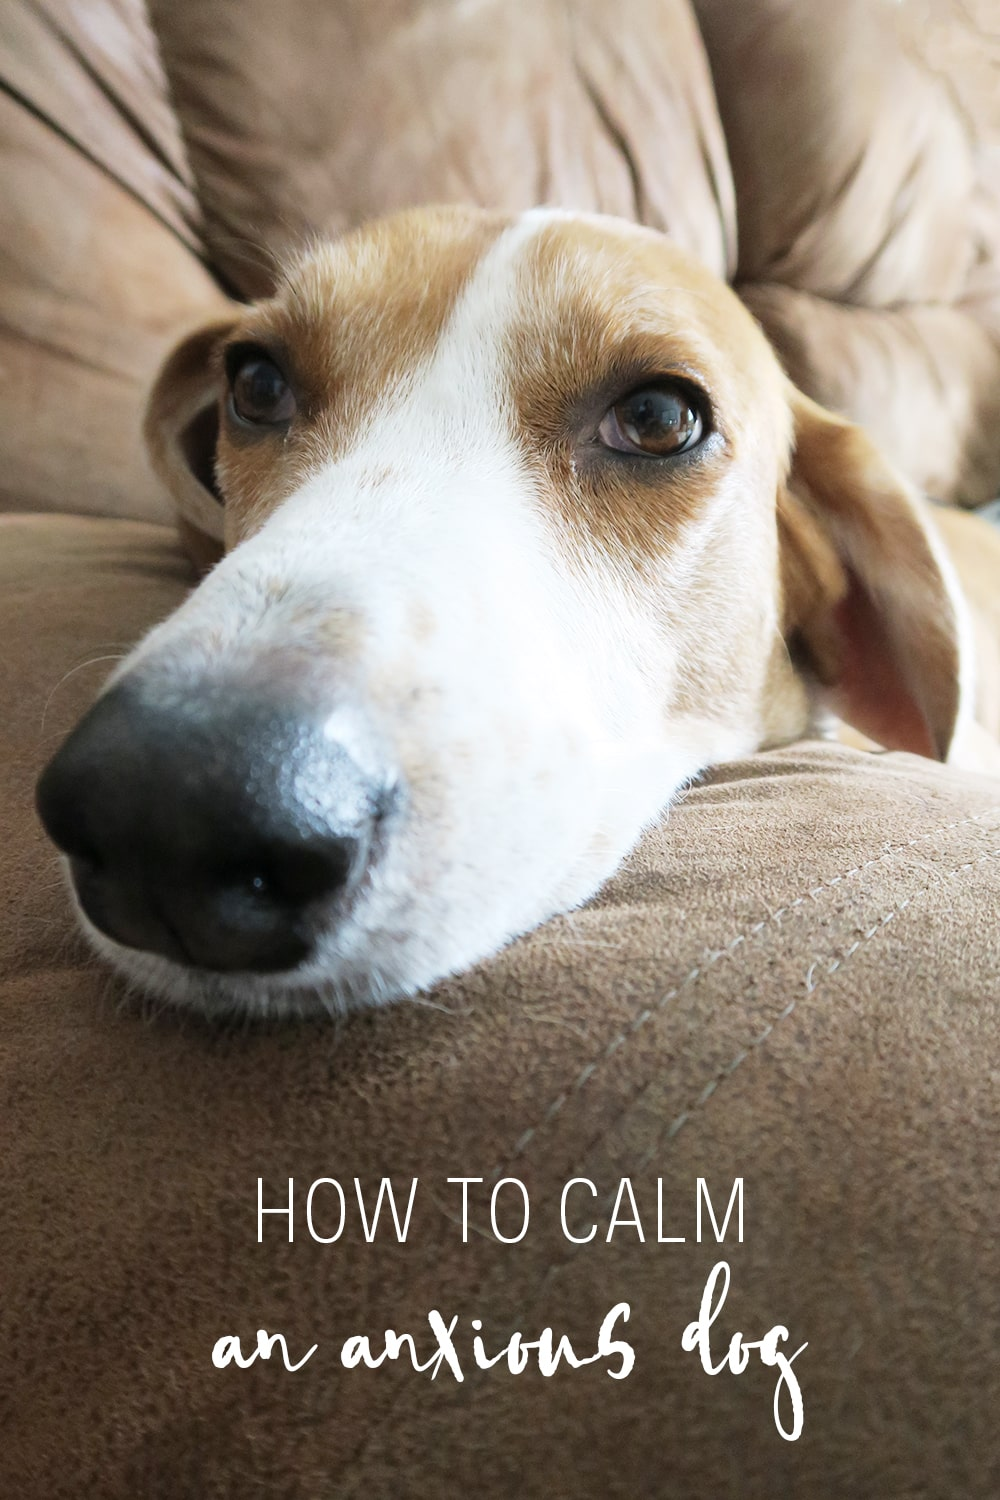 If your dog suffers from anxiety from thunderstorms, fireworks, or being apart - you can ease their stress with this guide on how to calm an anxious dog.